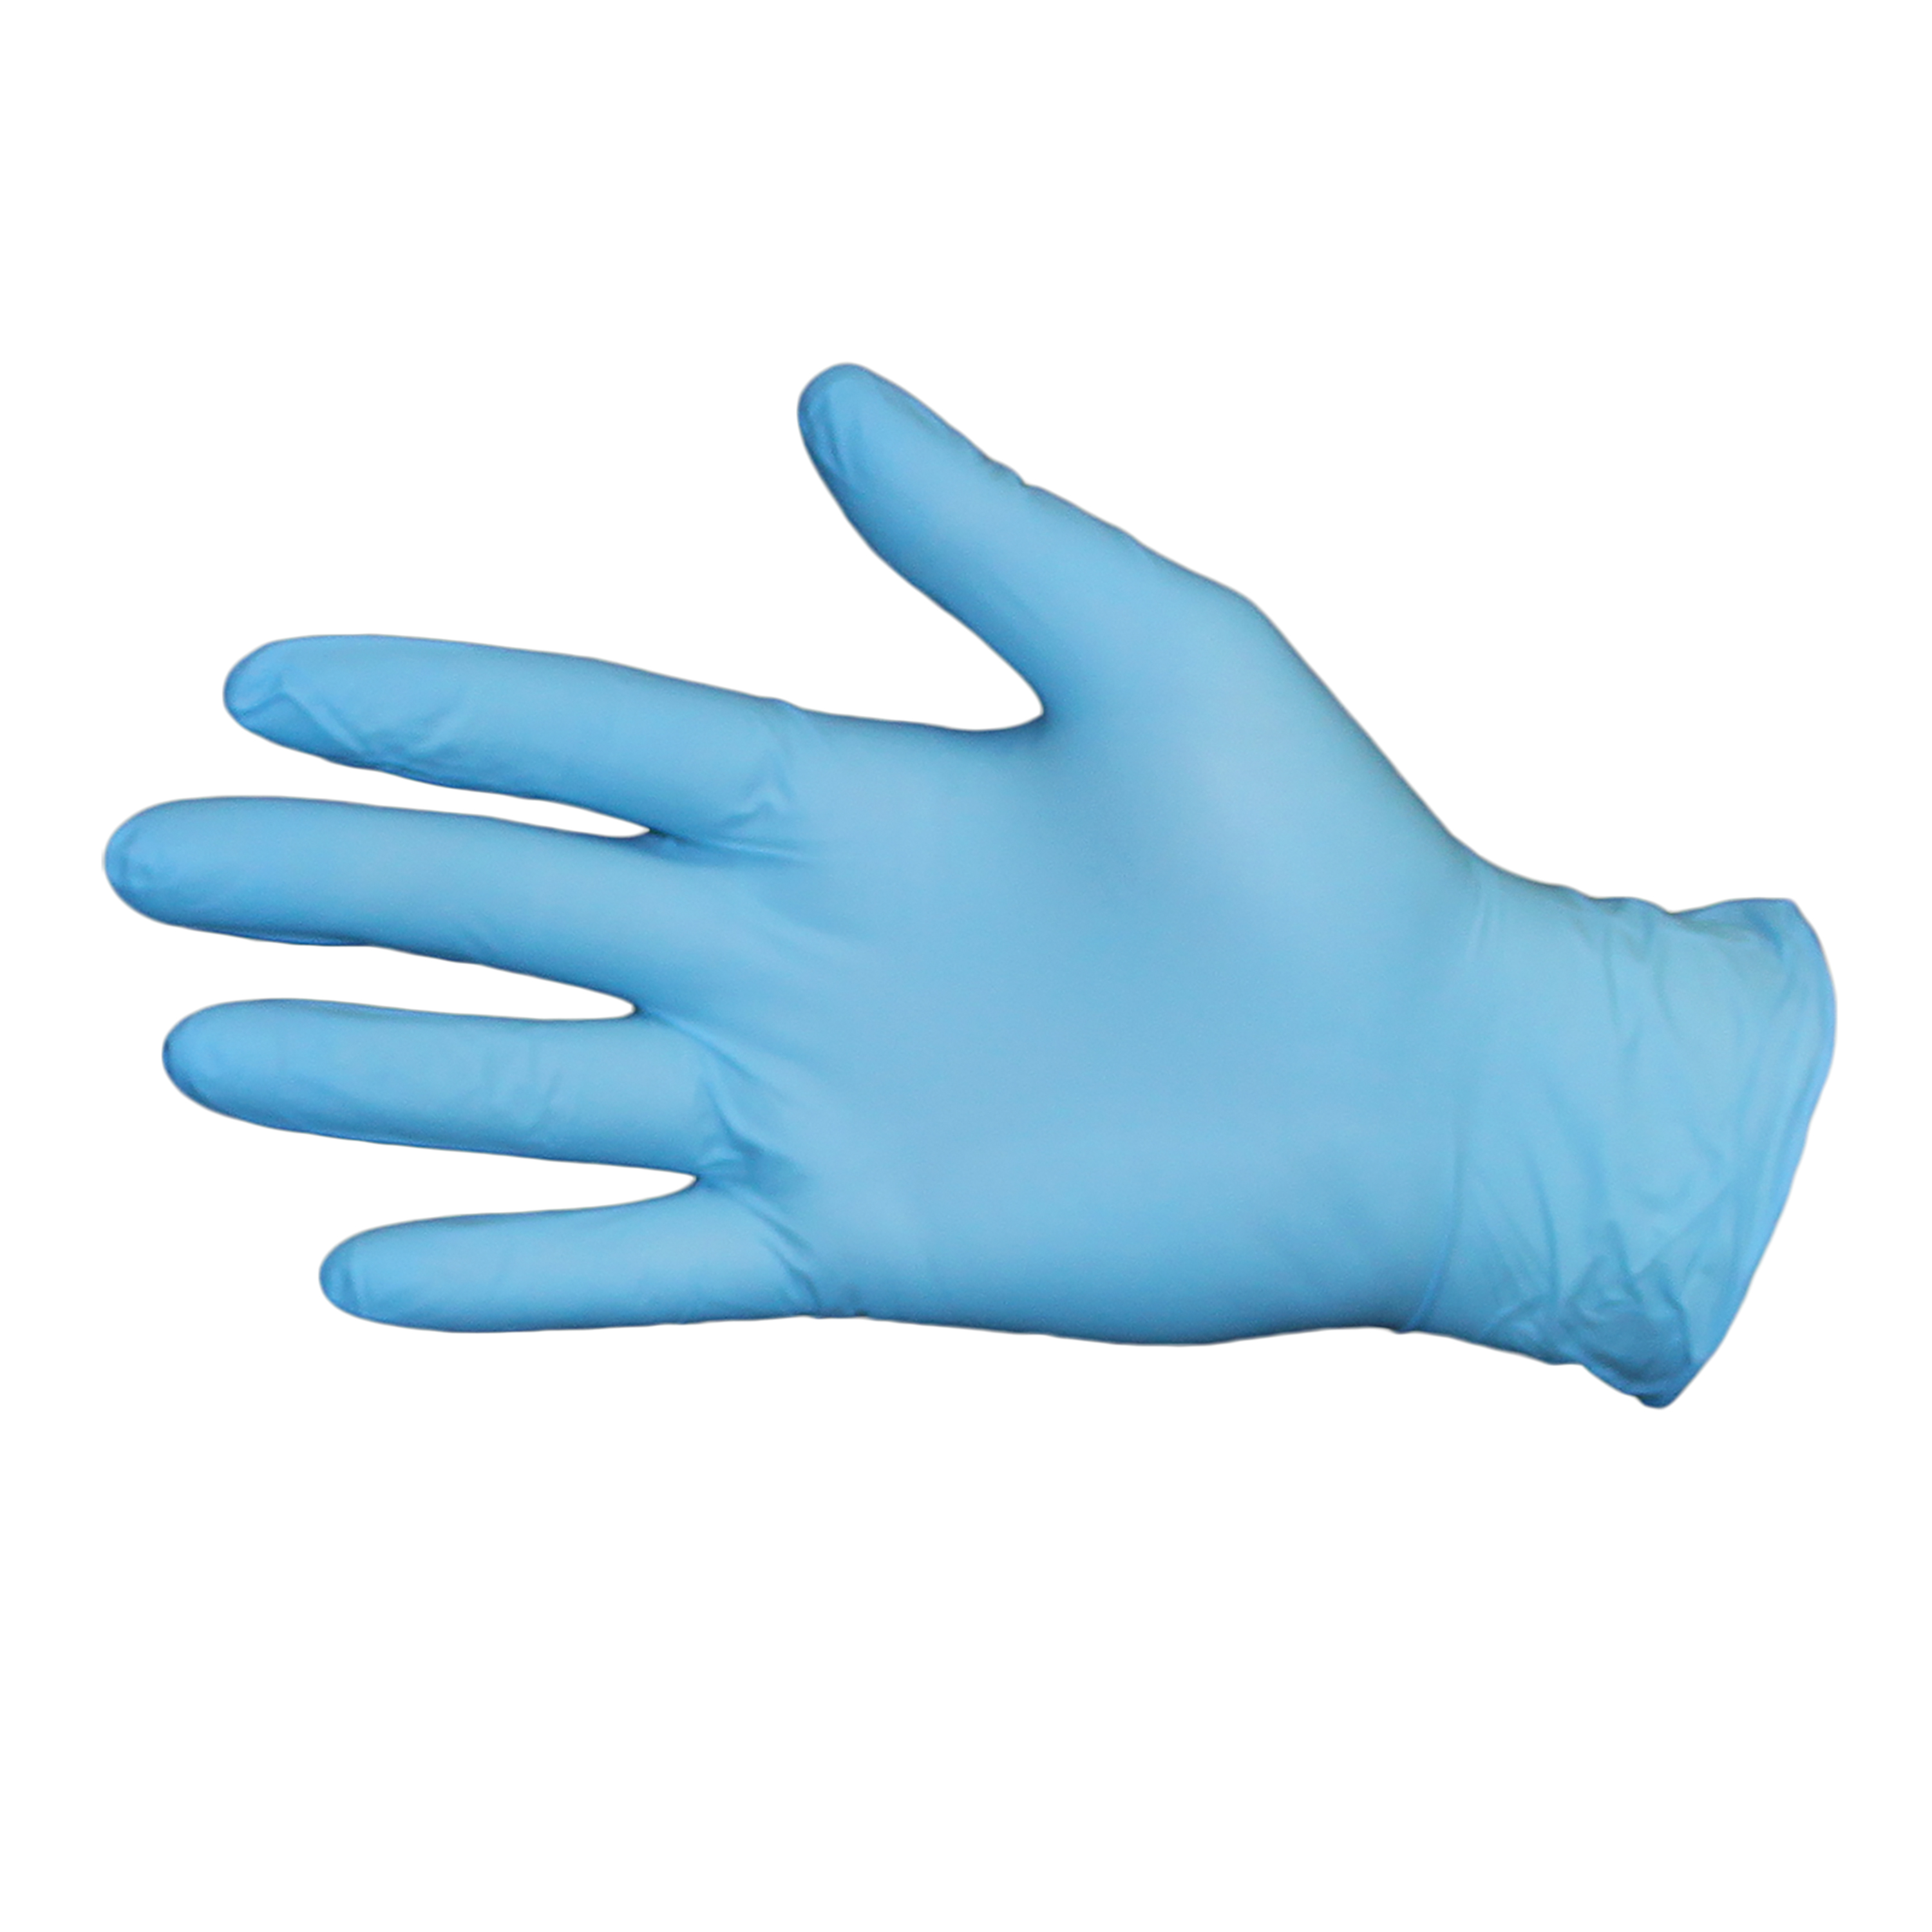 1550-04 Impact Products 8981XL disposable gloves